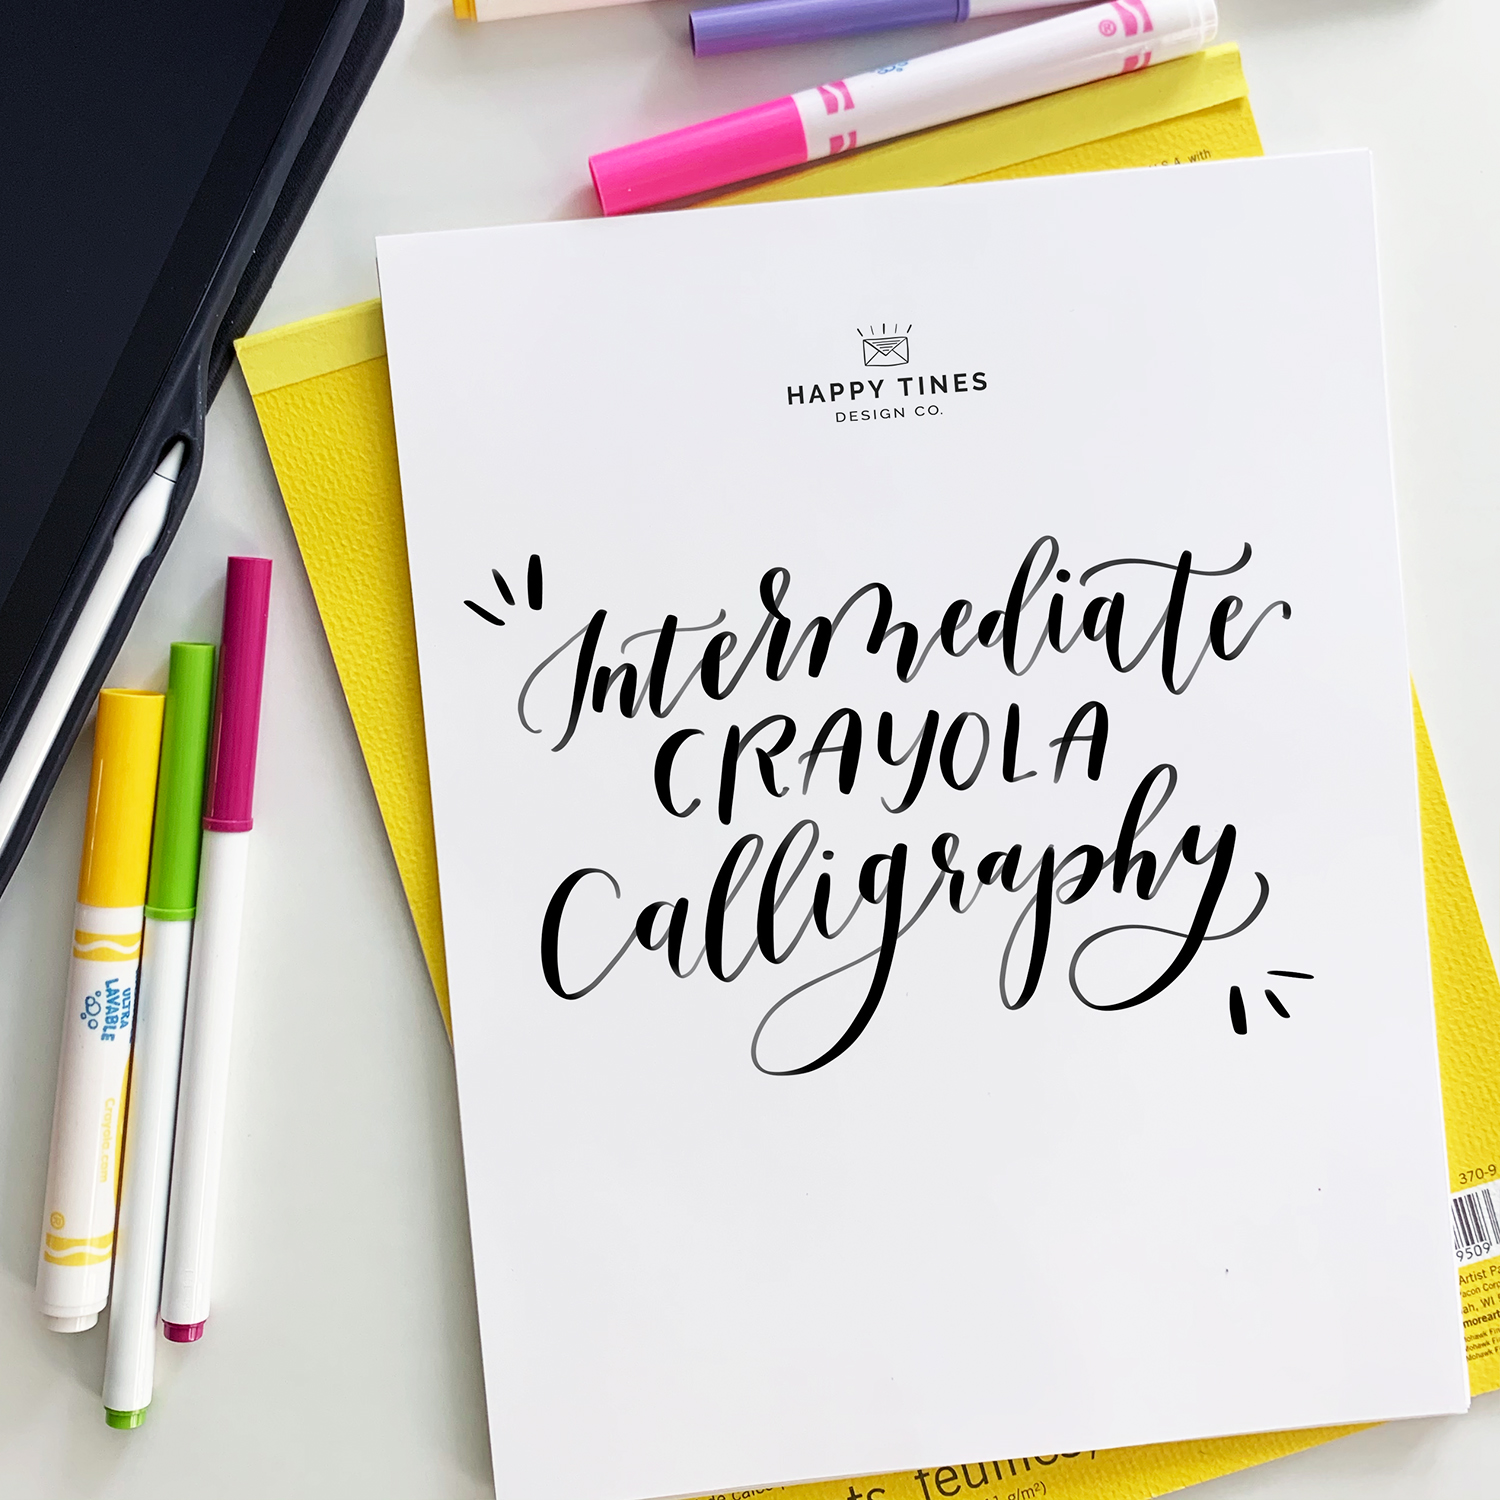 Intermediate Crayola Calligraphy